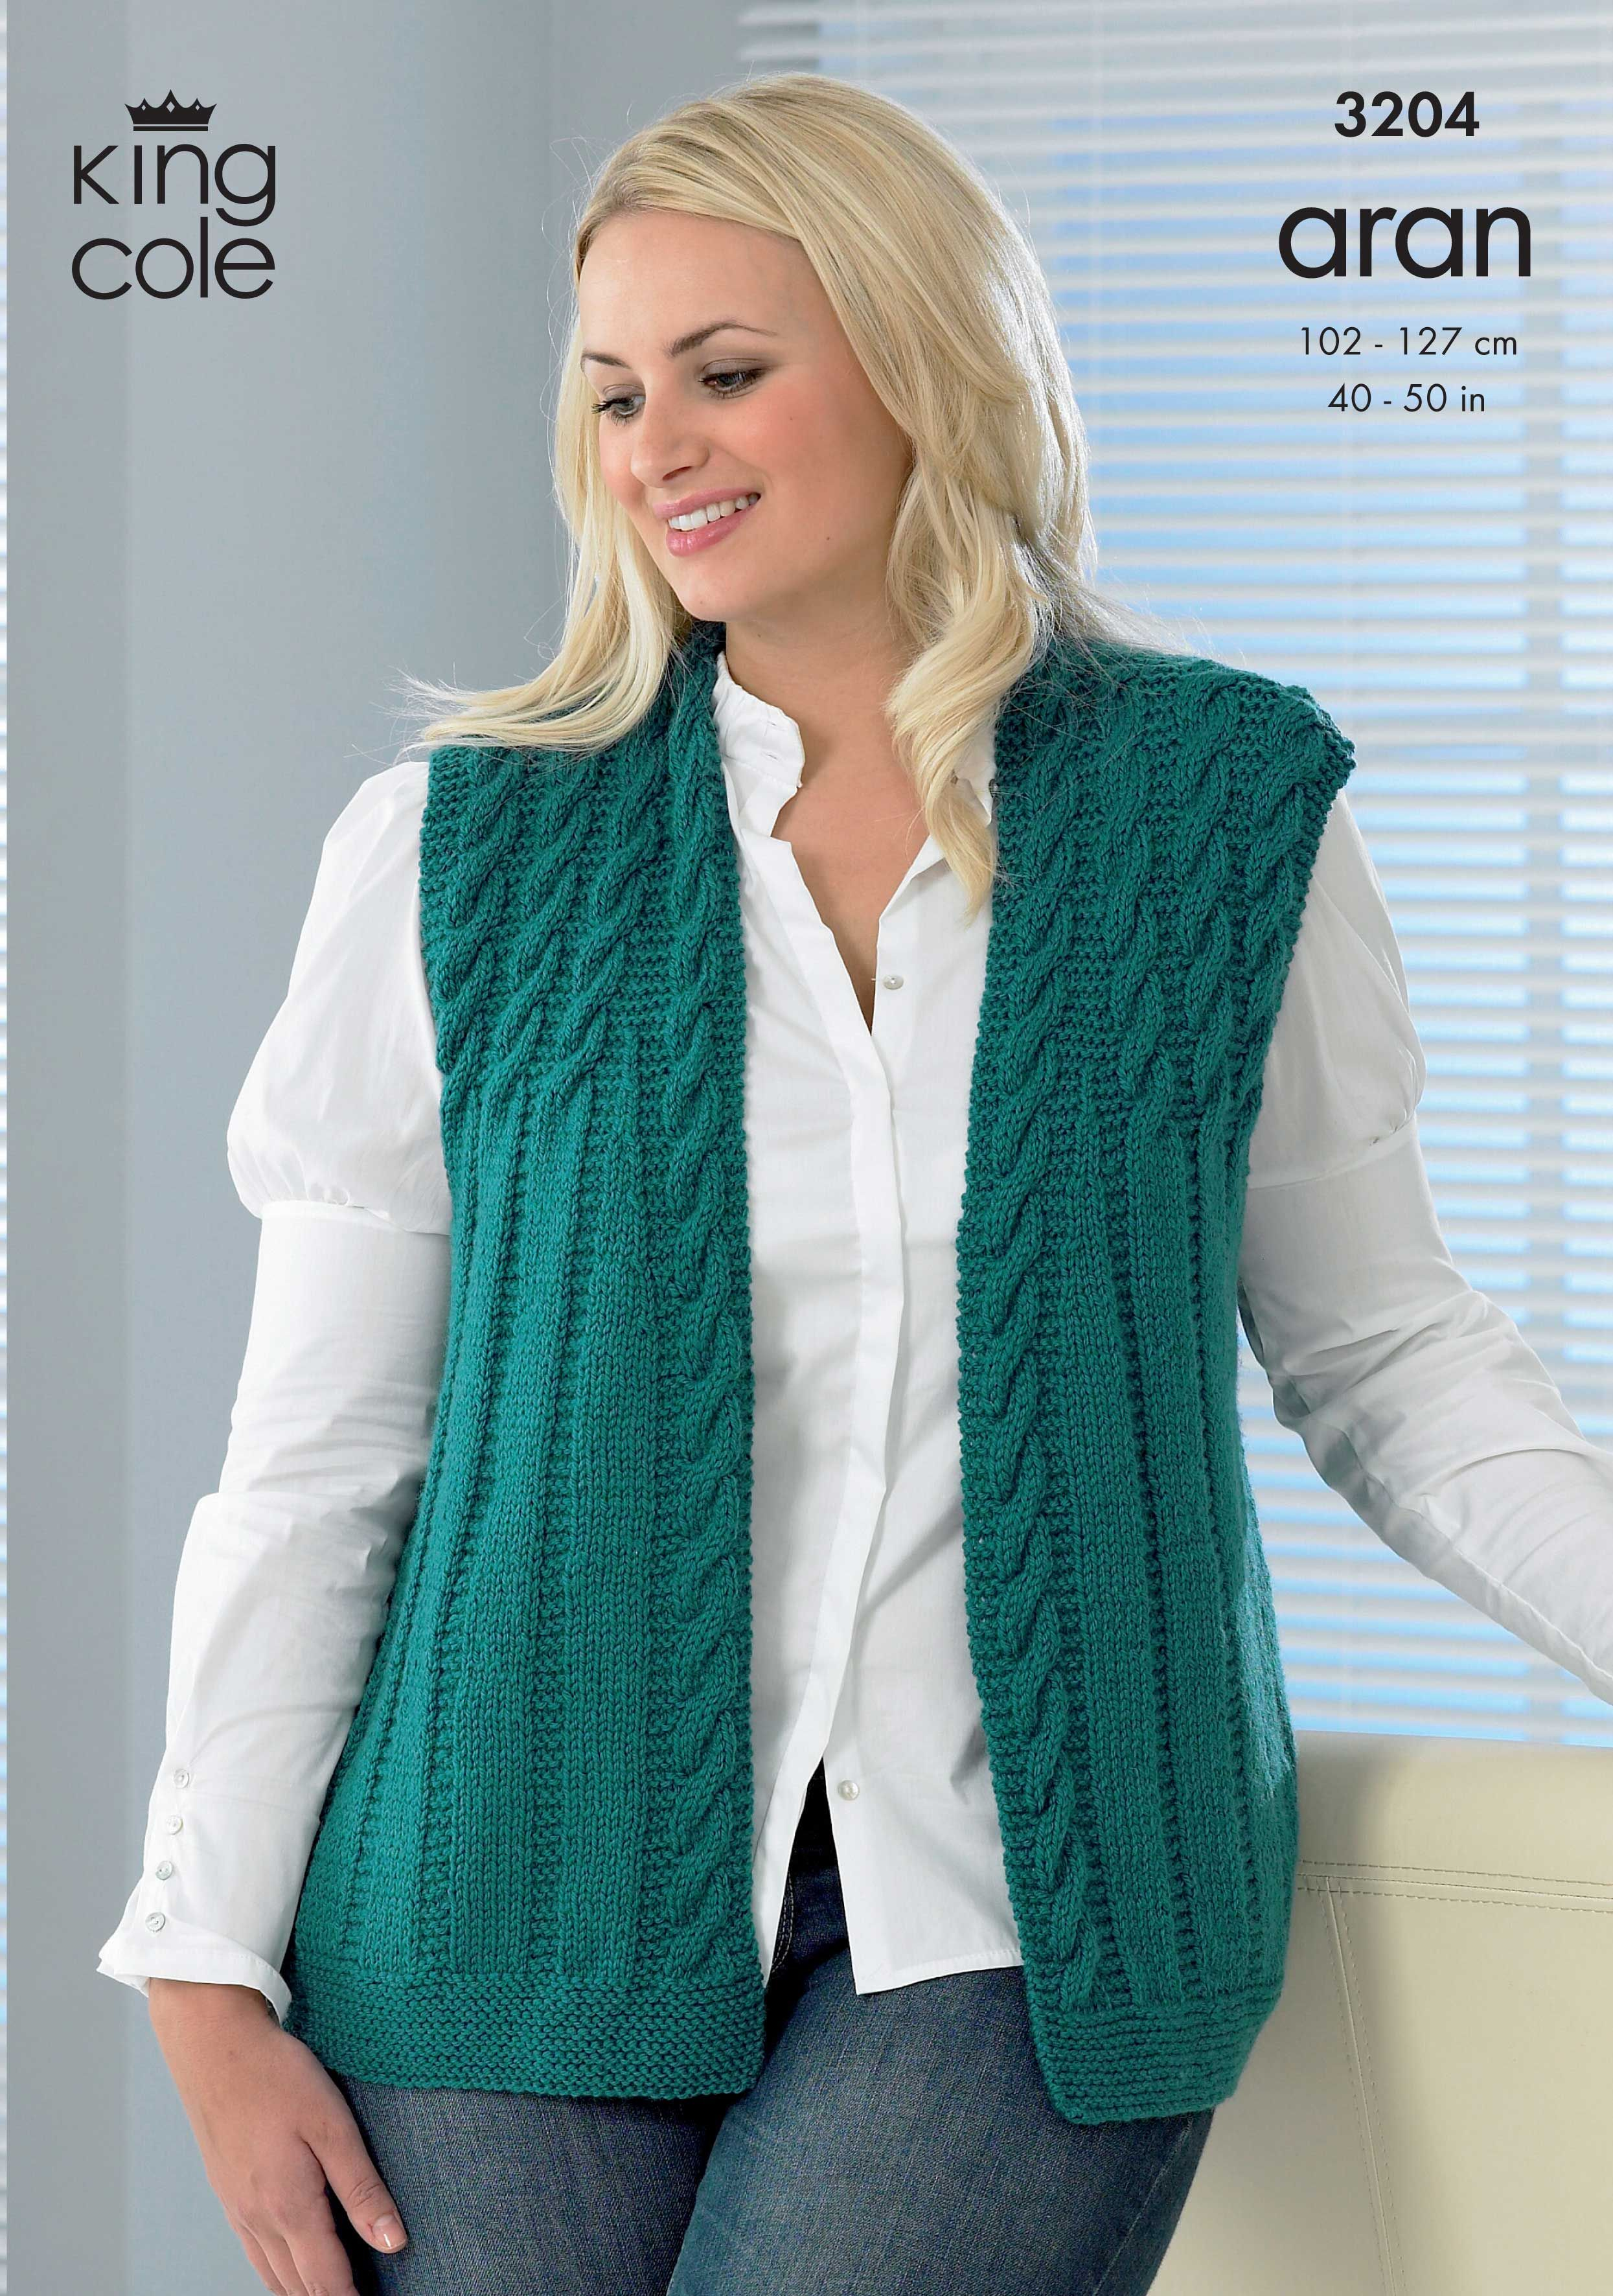 Womens Knitted Waistcoat with Great Detail - King Cole  0560879a6938